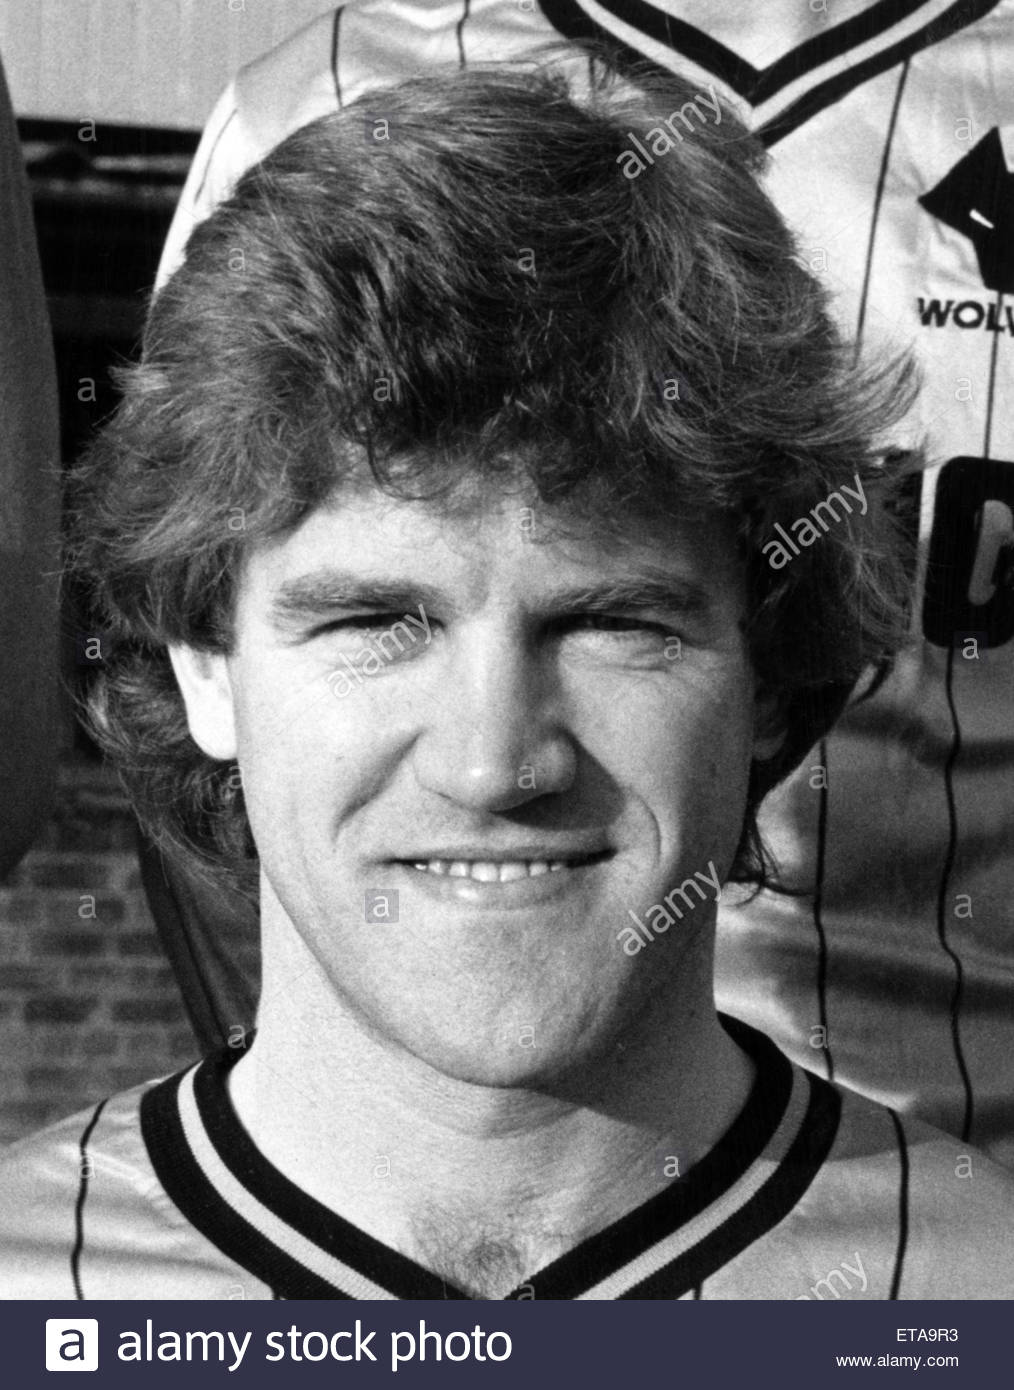 Gordon Smith (born 3 July 1954), was a professional footballer who played as a defender. He was born in Partick, - Stock Image